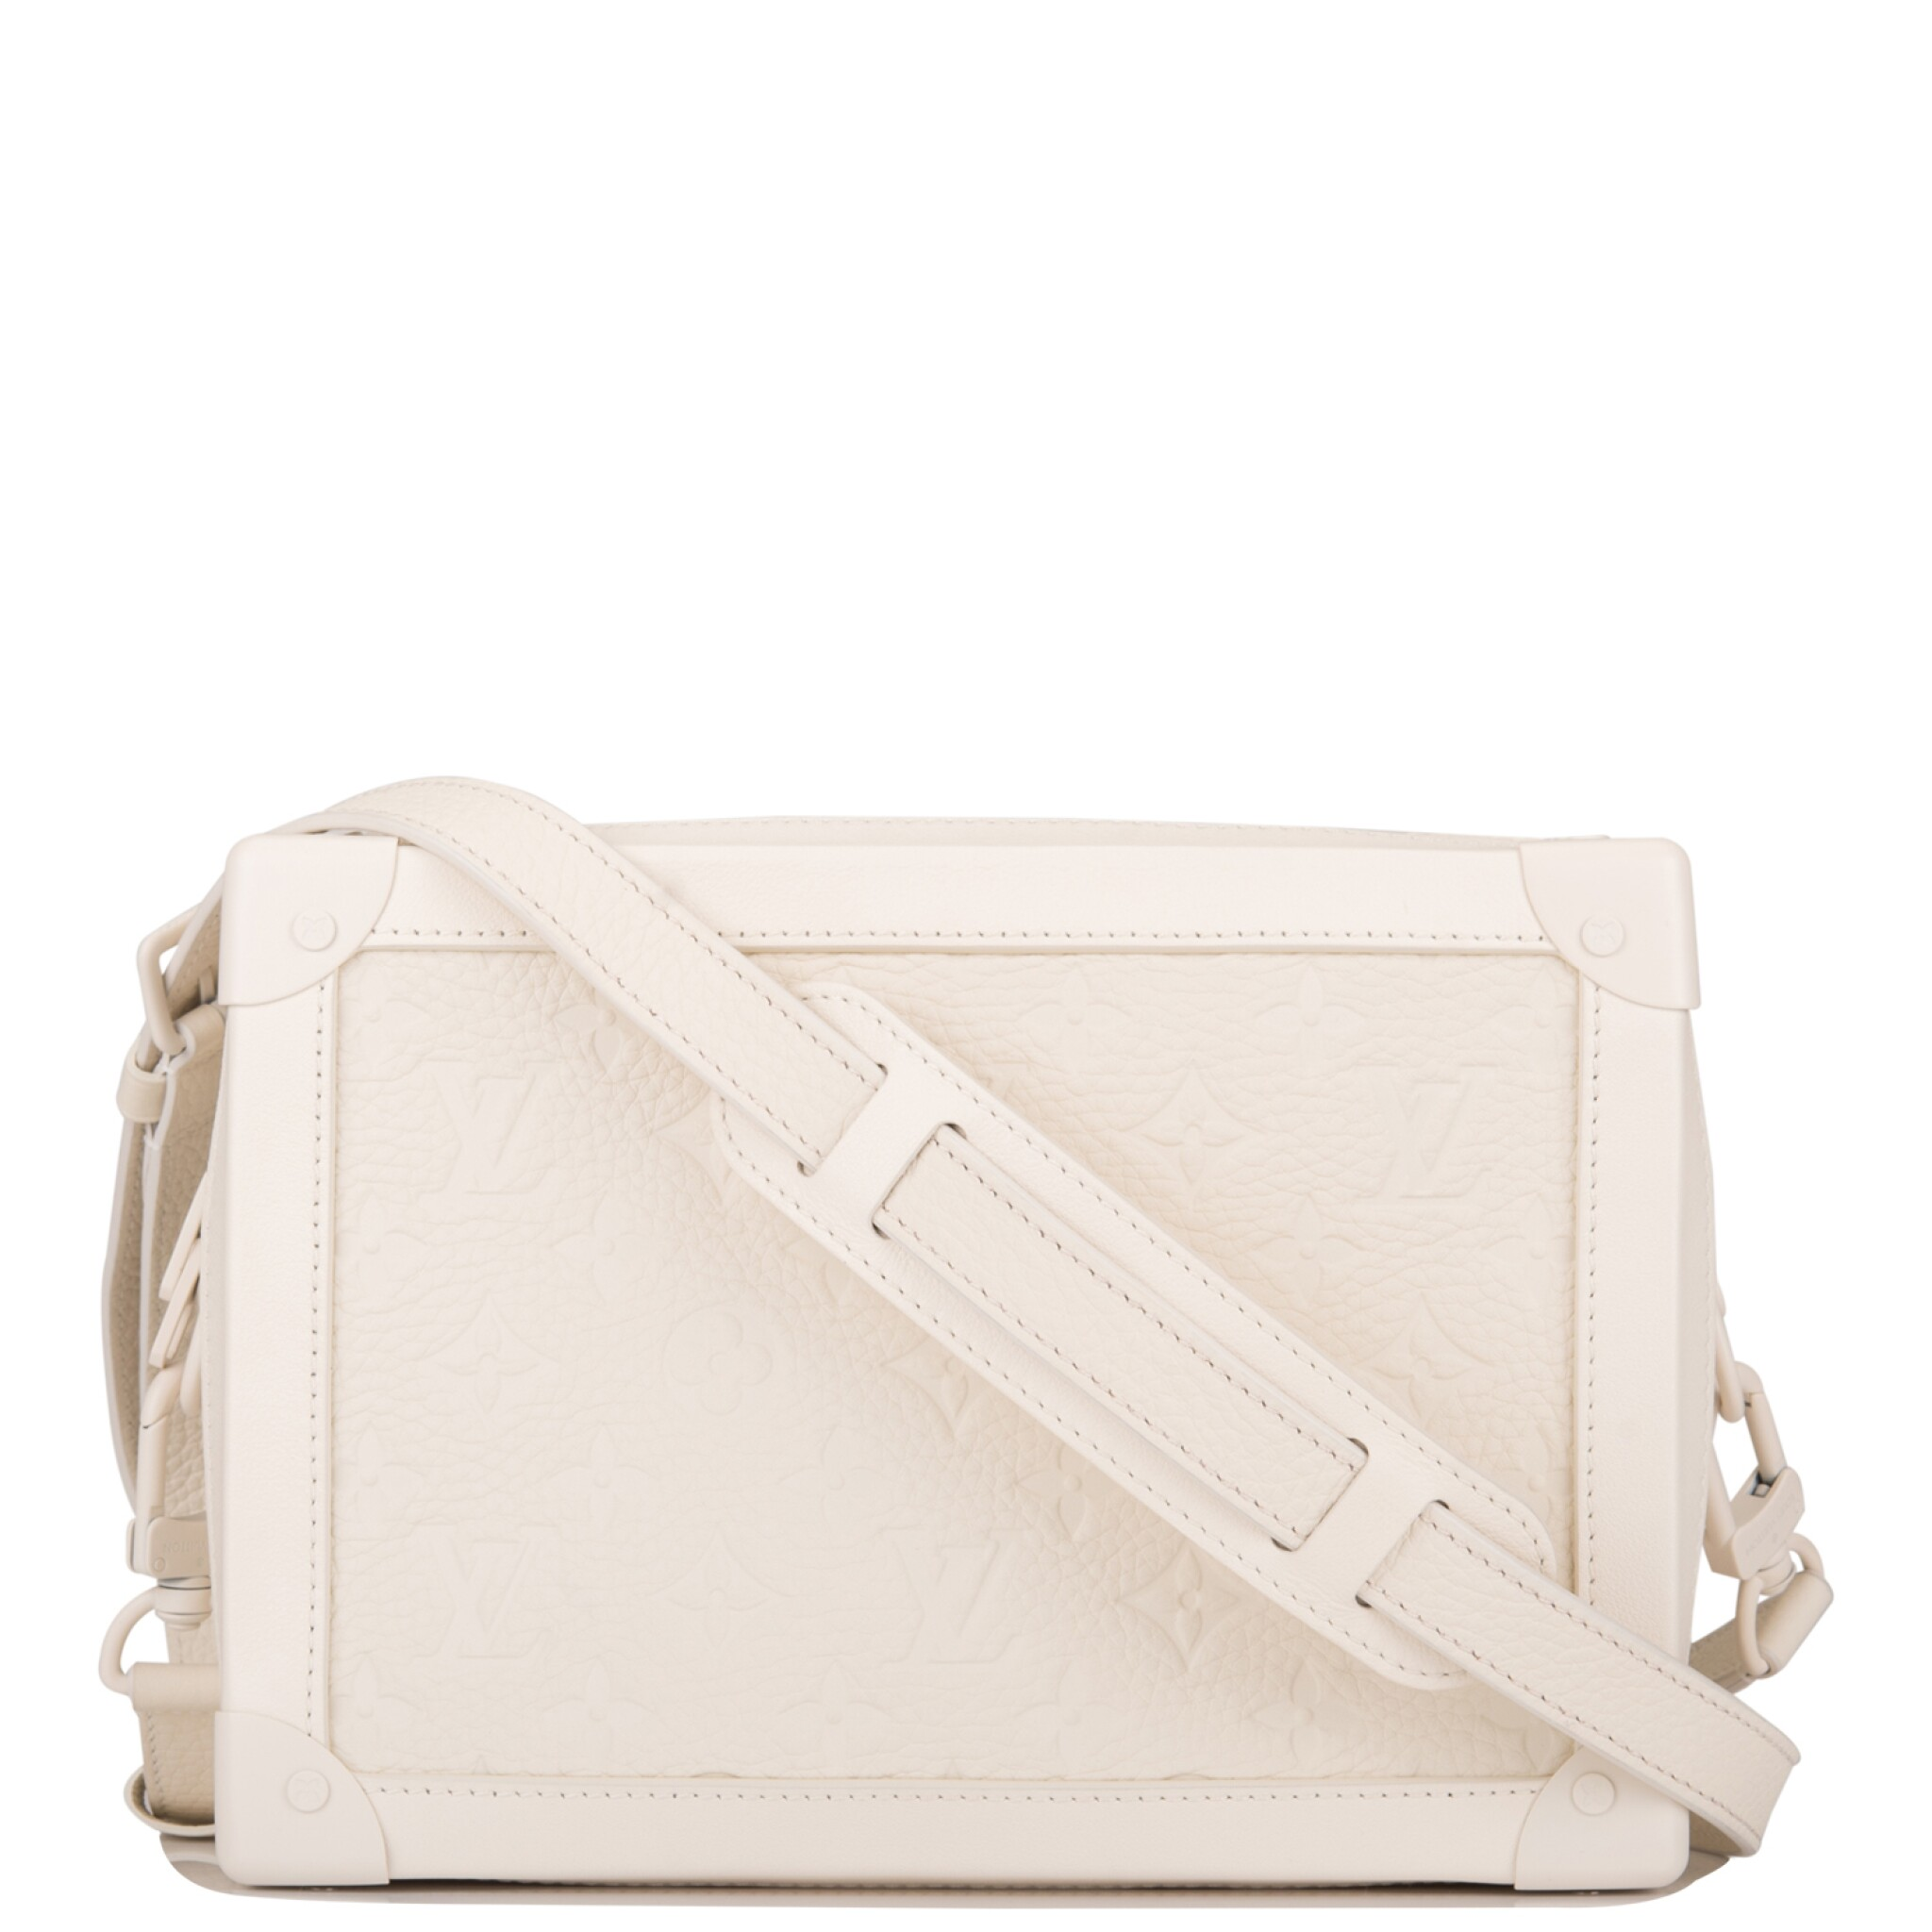 View full screen - View 1 of Lot 85. Louis Vuitton x Virgil Abloh White Soft Trunk Bag of Taurillion Monogram Leather with White Hardware.